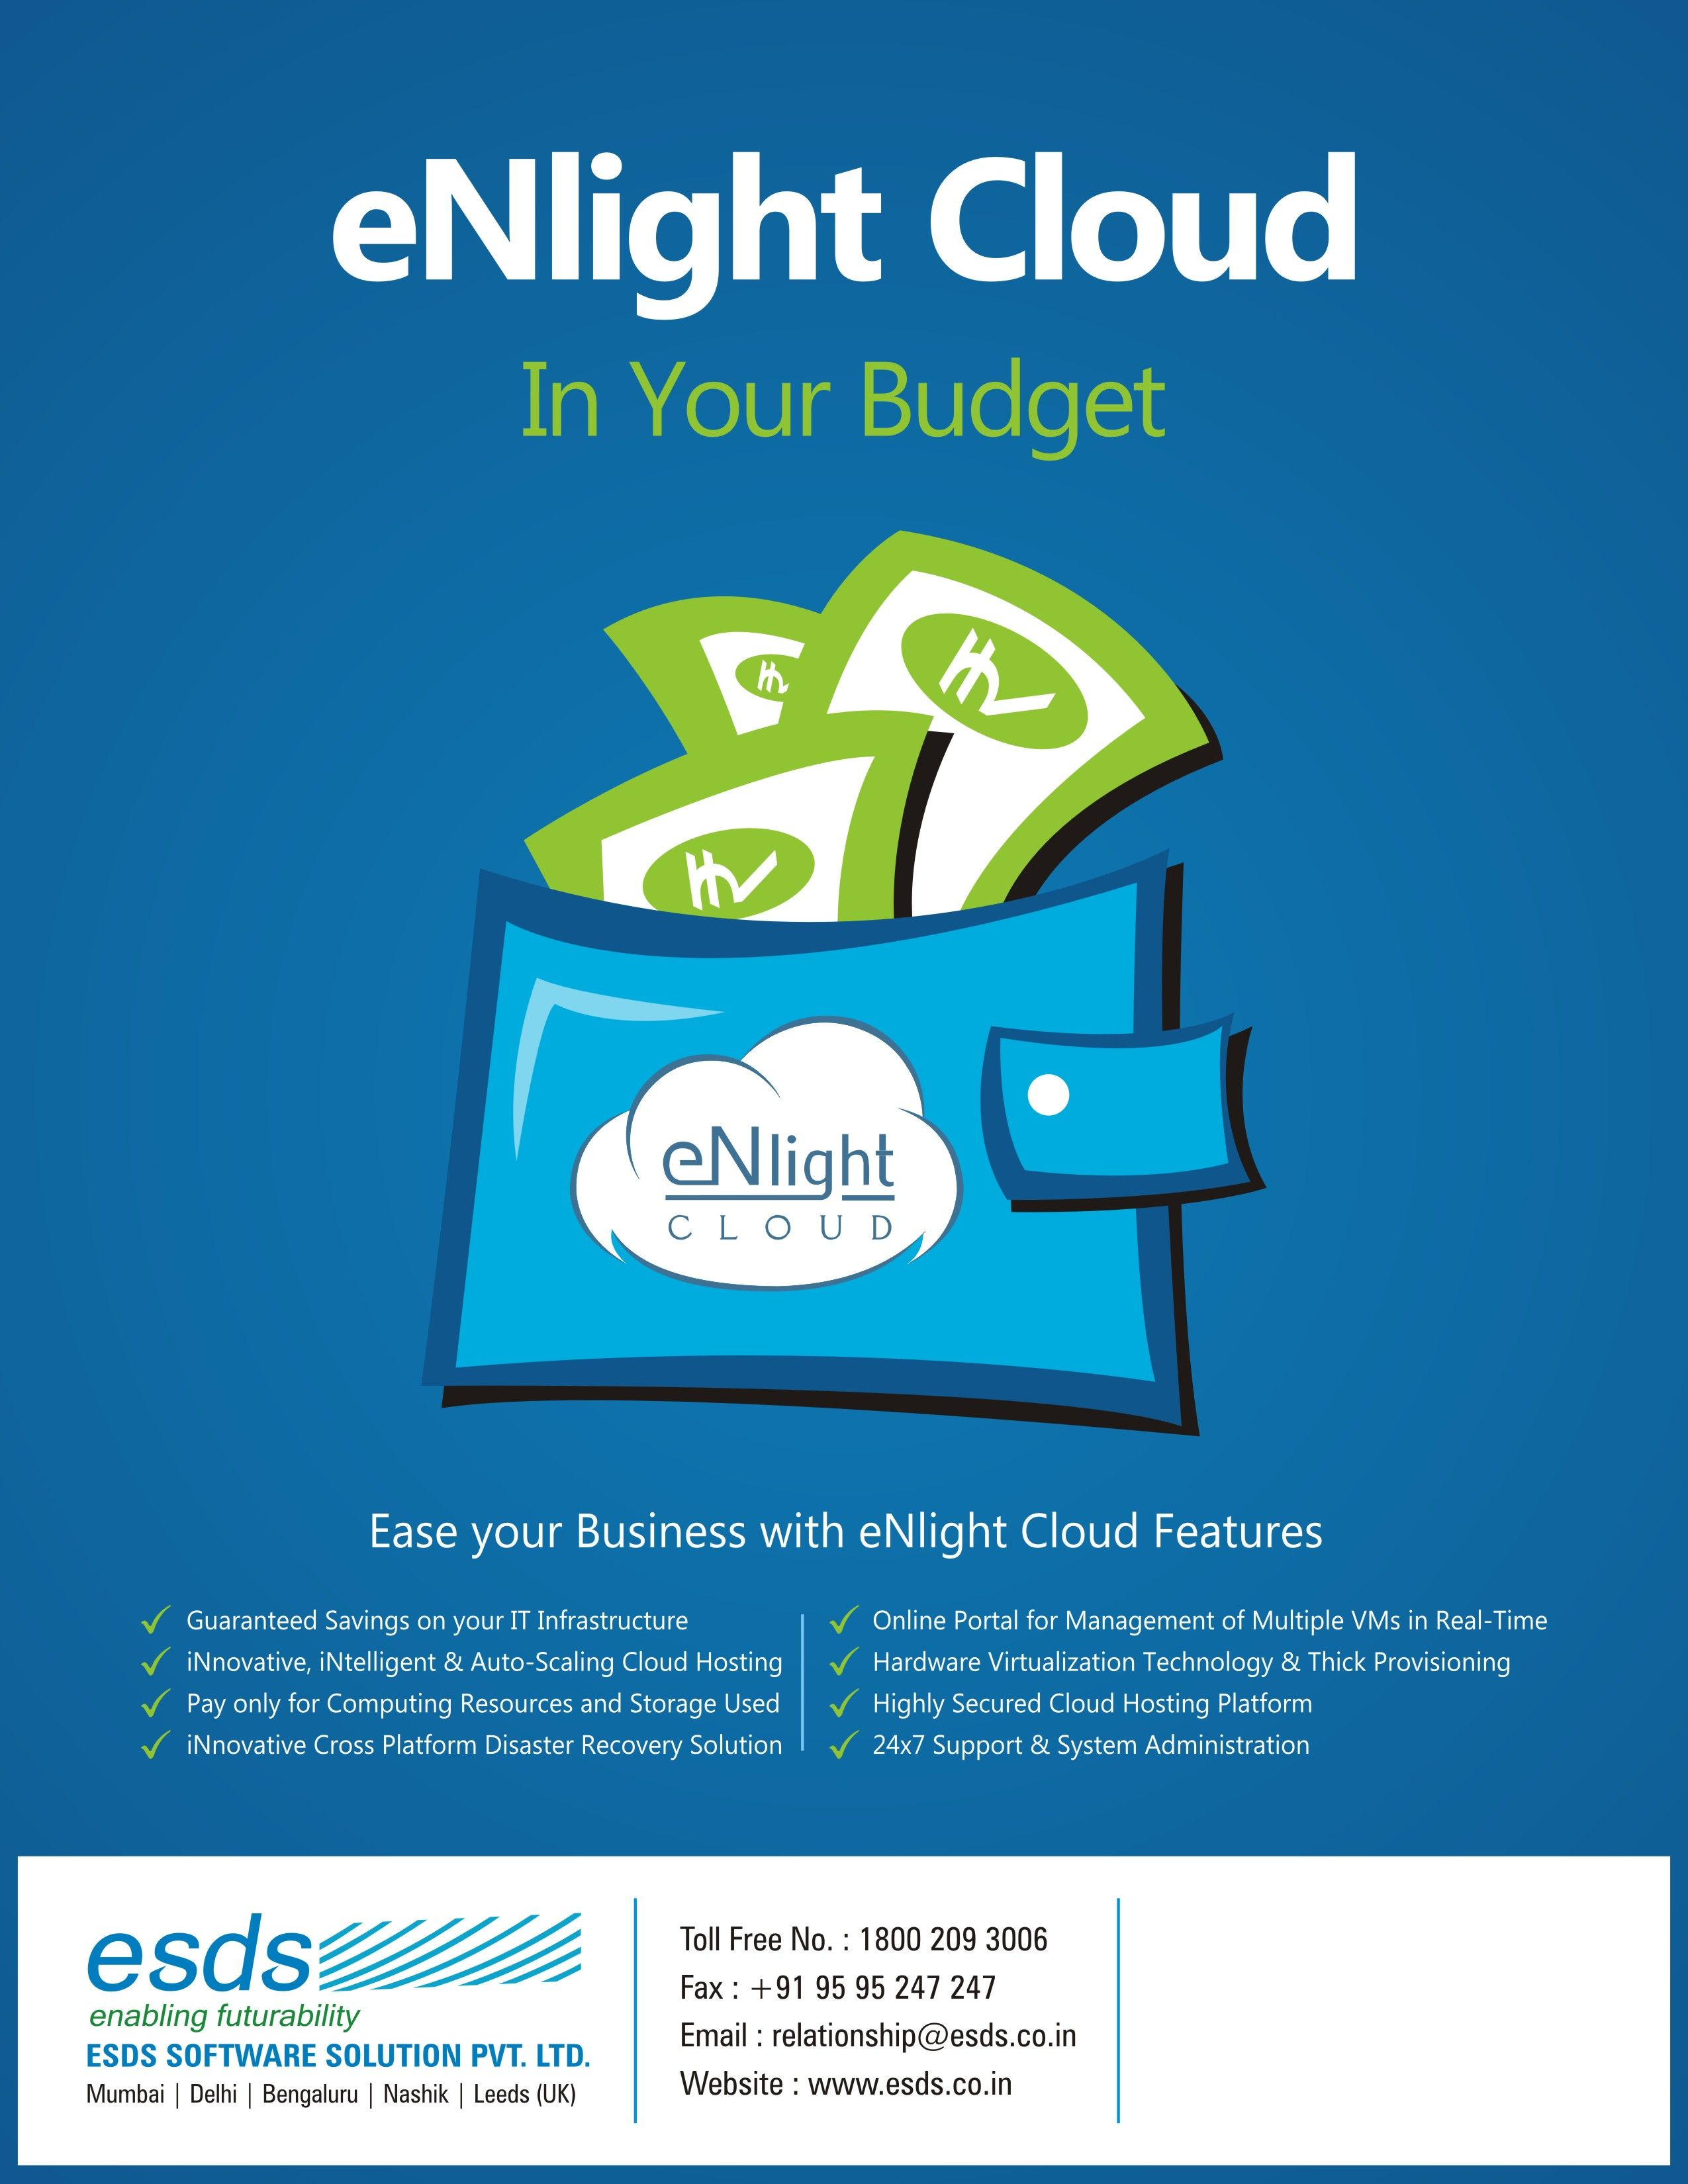 CreativeFriday #Optimize your #ITBudget with ESDS eNlight #Cloud